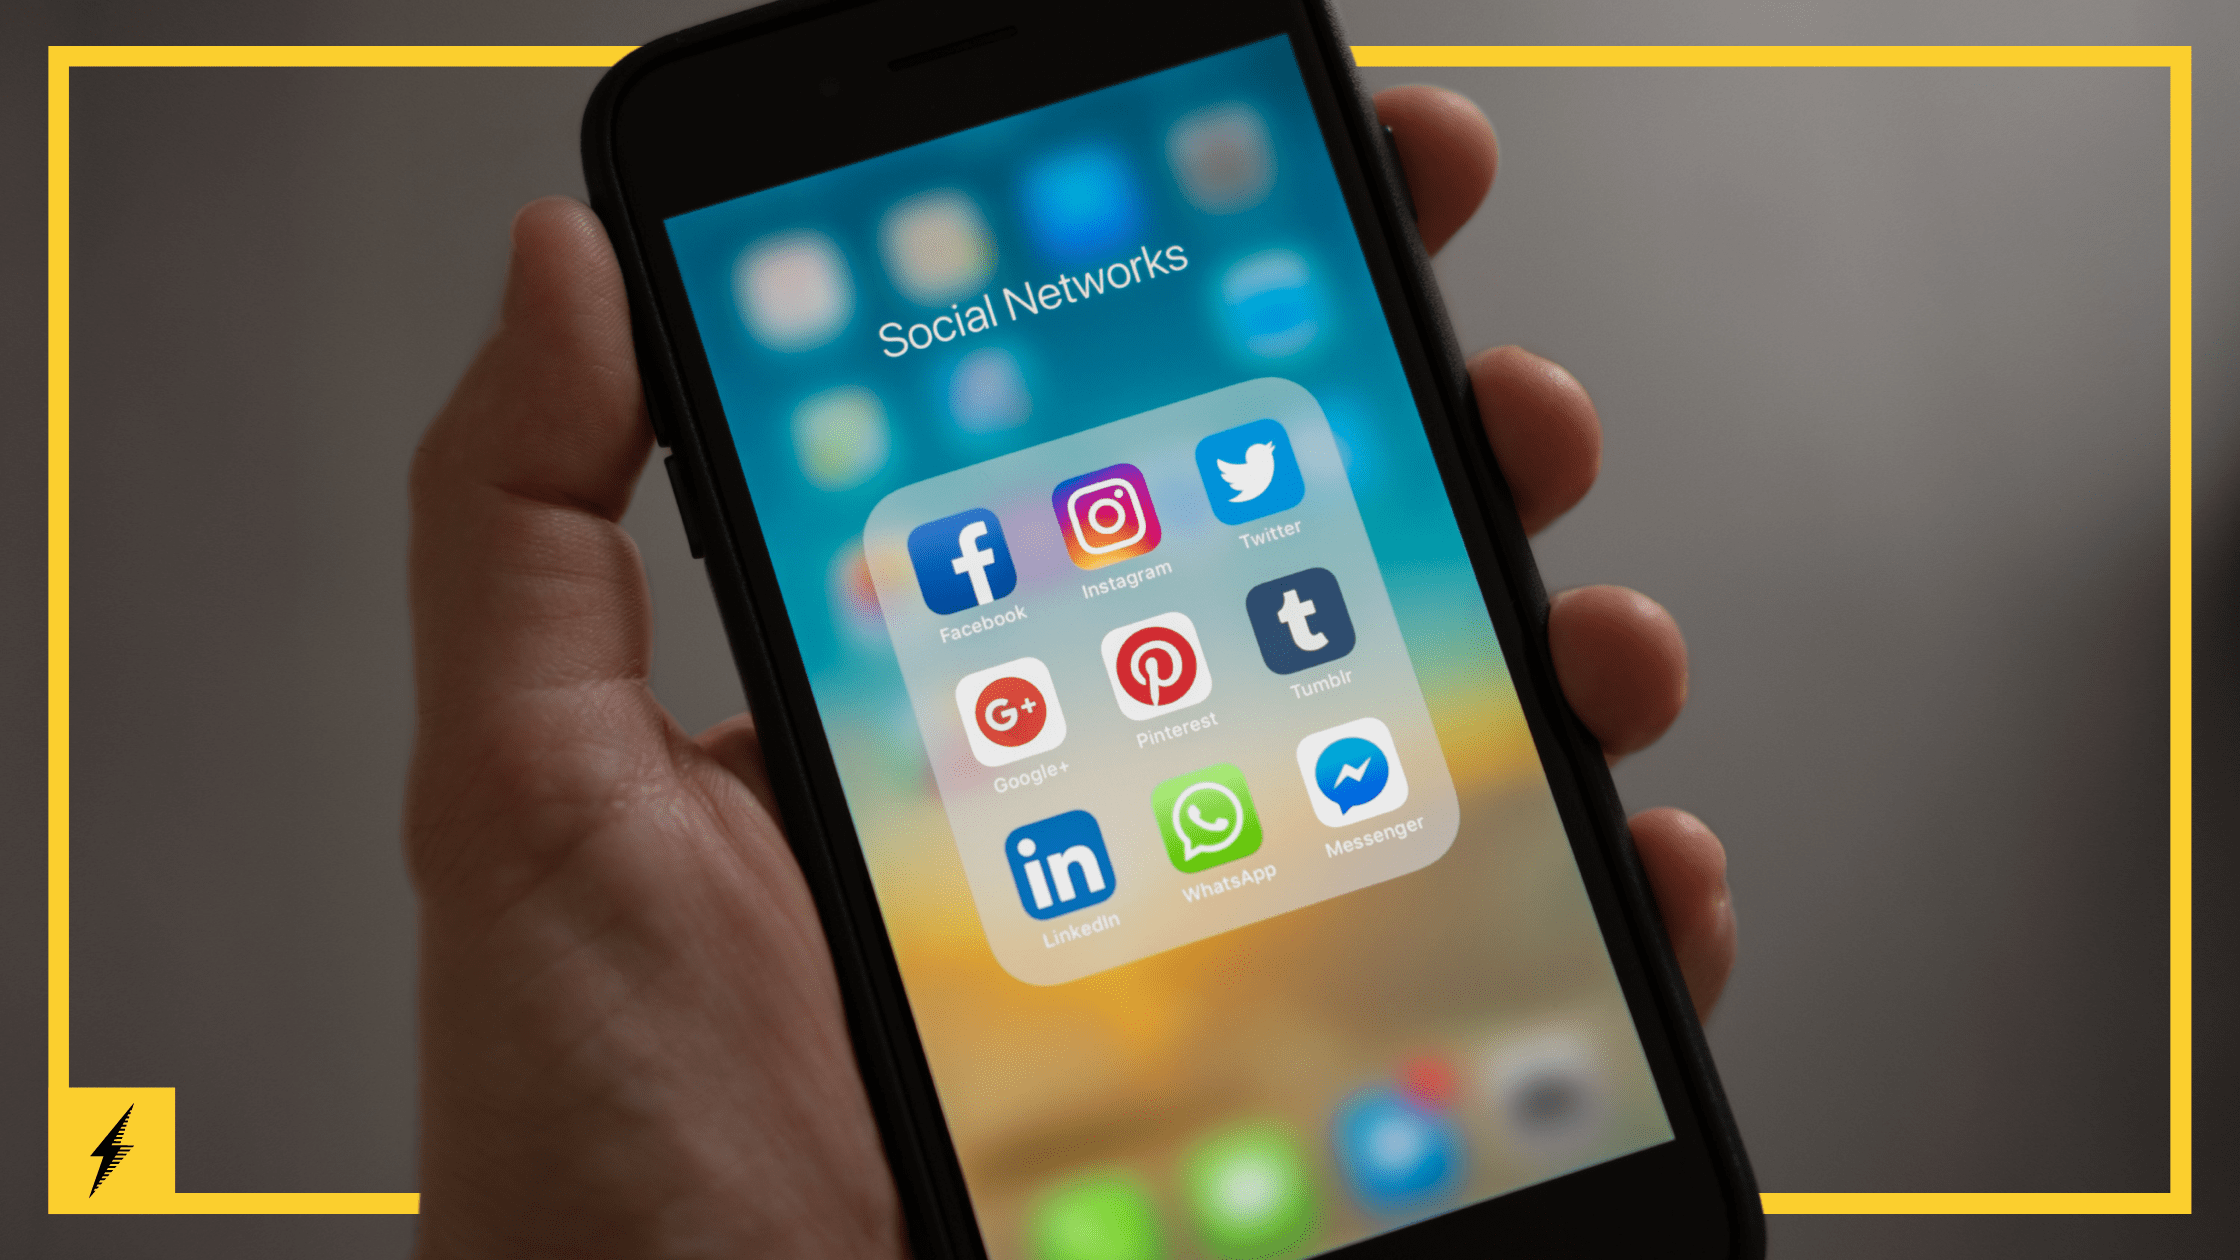 A mobile phone displays app icons for various social media networks.